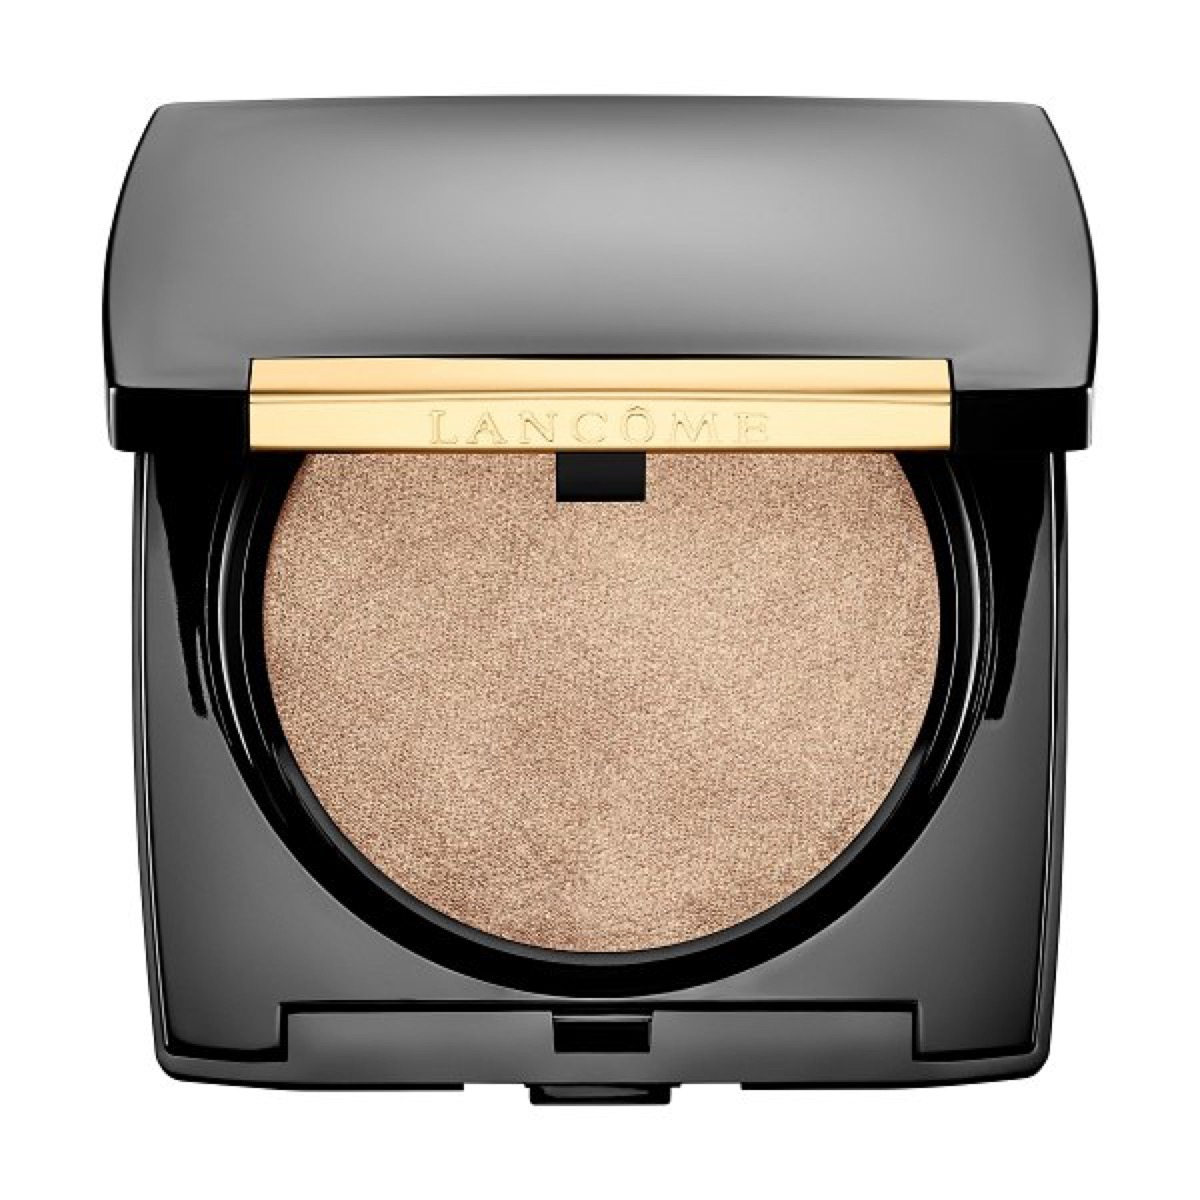 Open Lancome highlighter compact